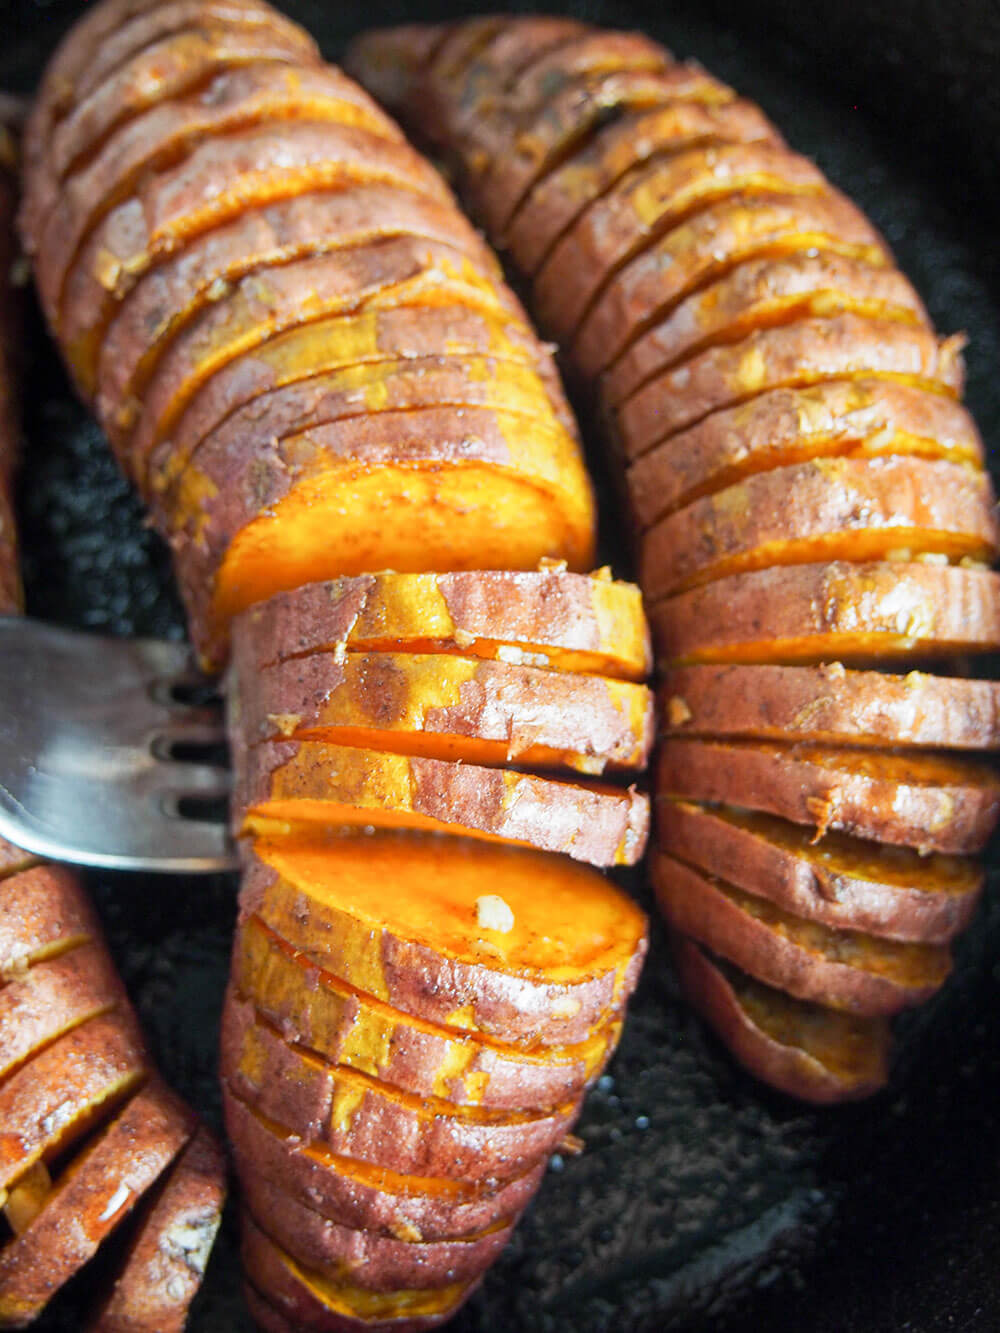 hasselback sweet potatoes - lifting one up with fork